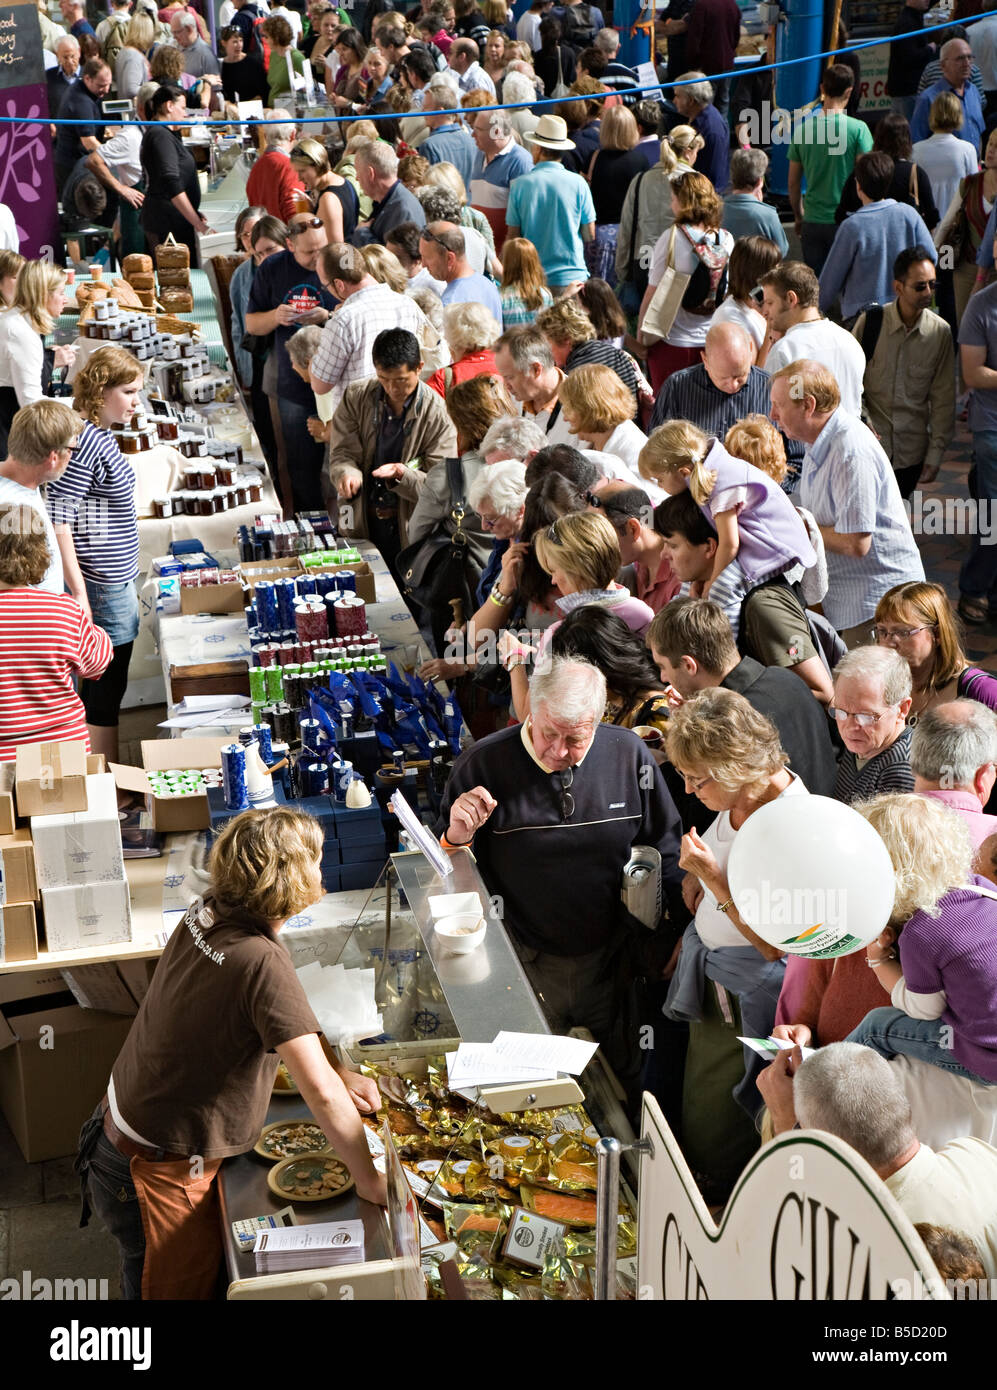 Crowds of people at Abergavenny Food Festival Wales UK - Stock Image